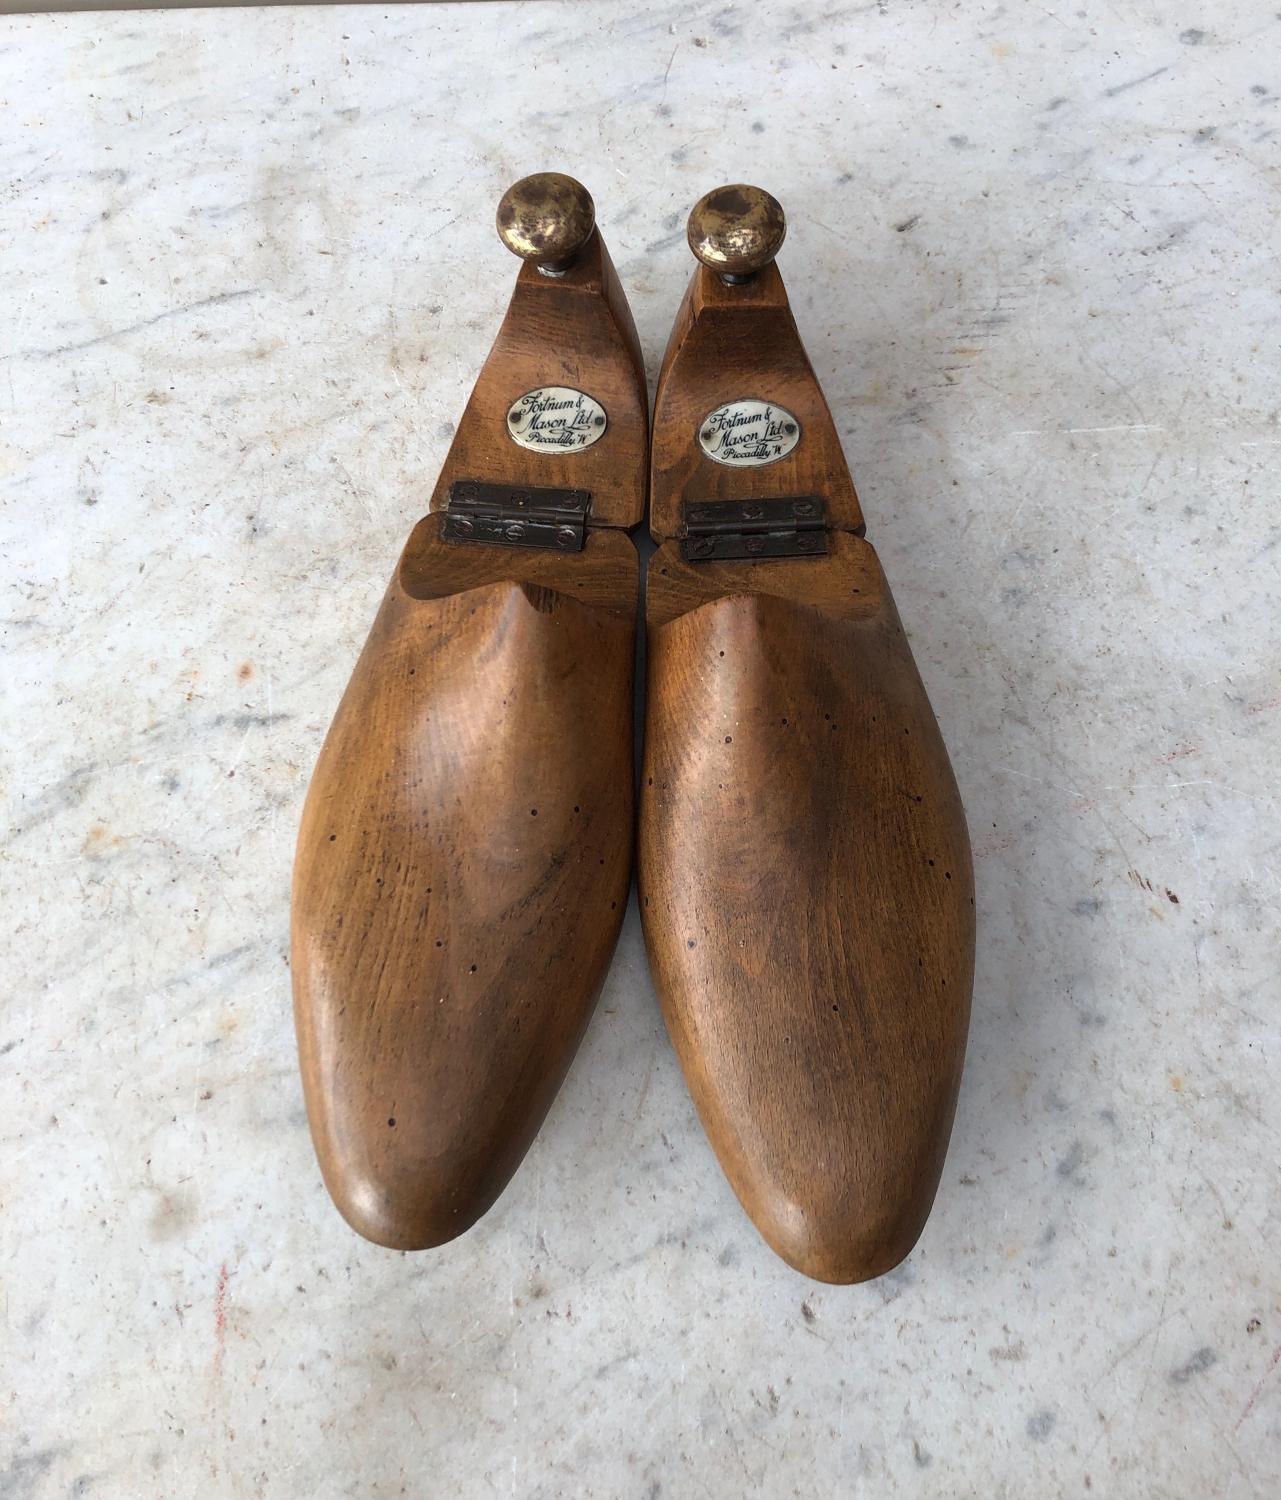 Early 20thC Shoe Trees - Fortnum & Mason